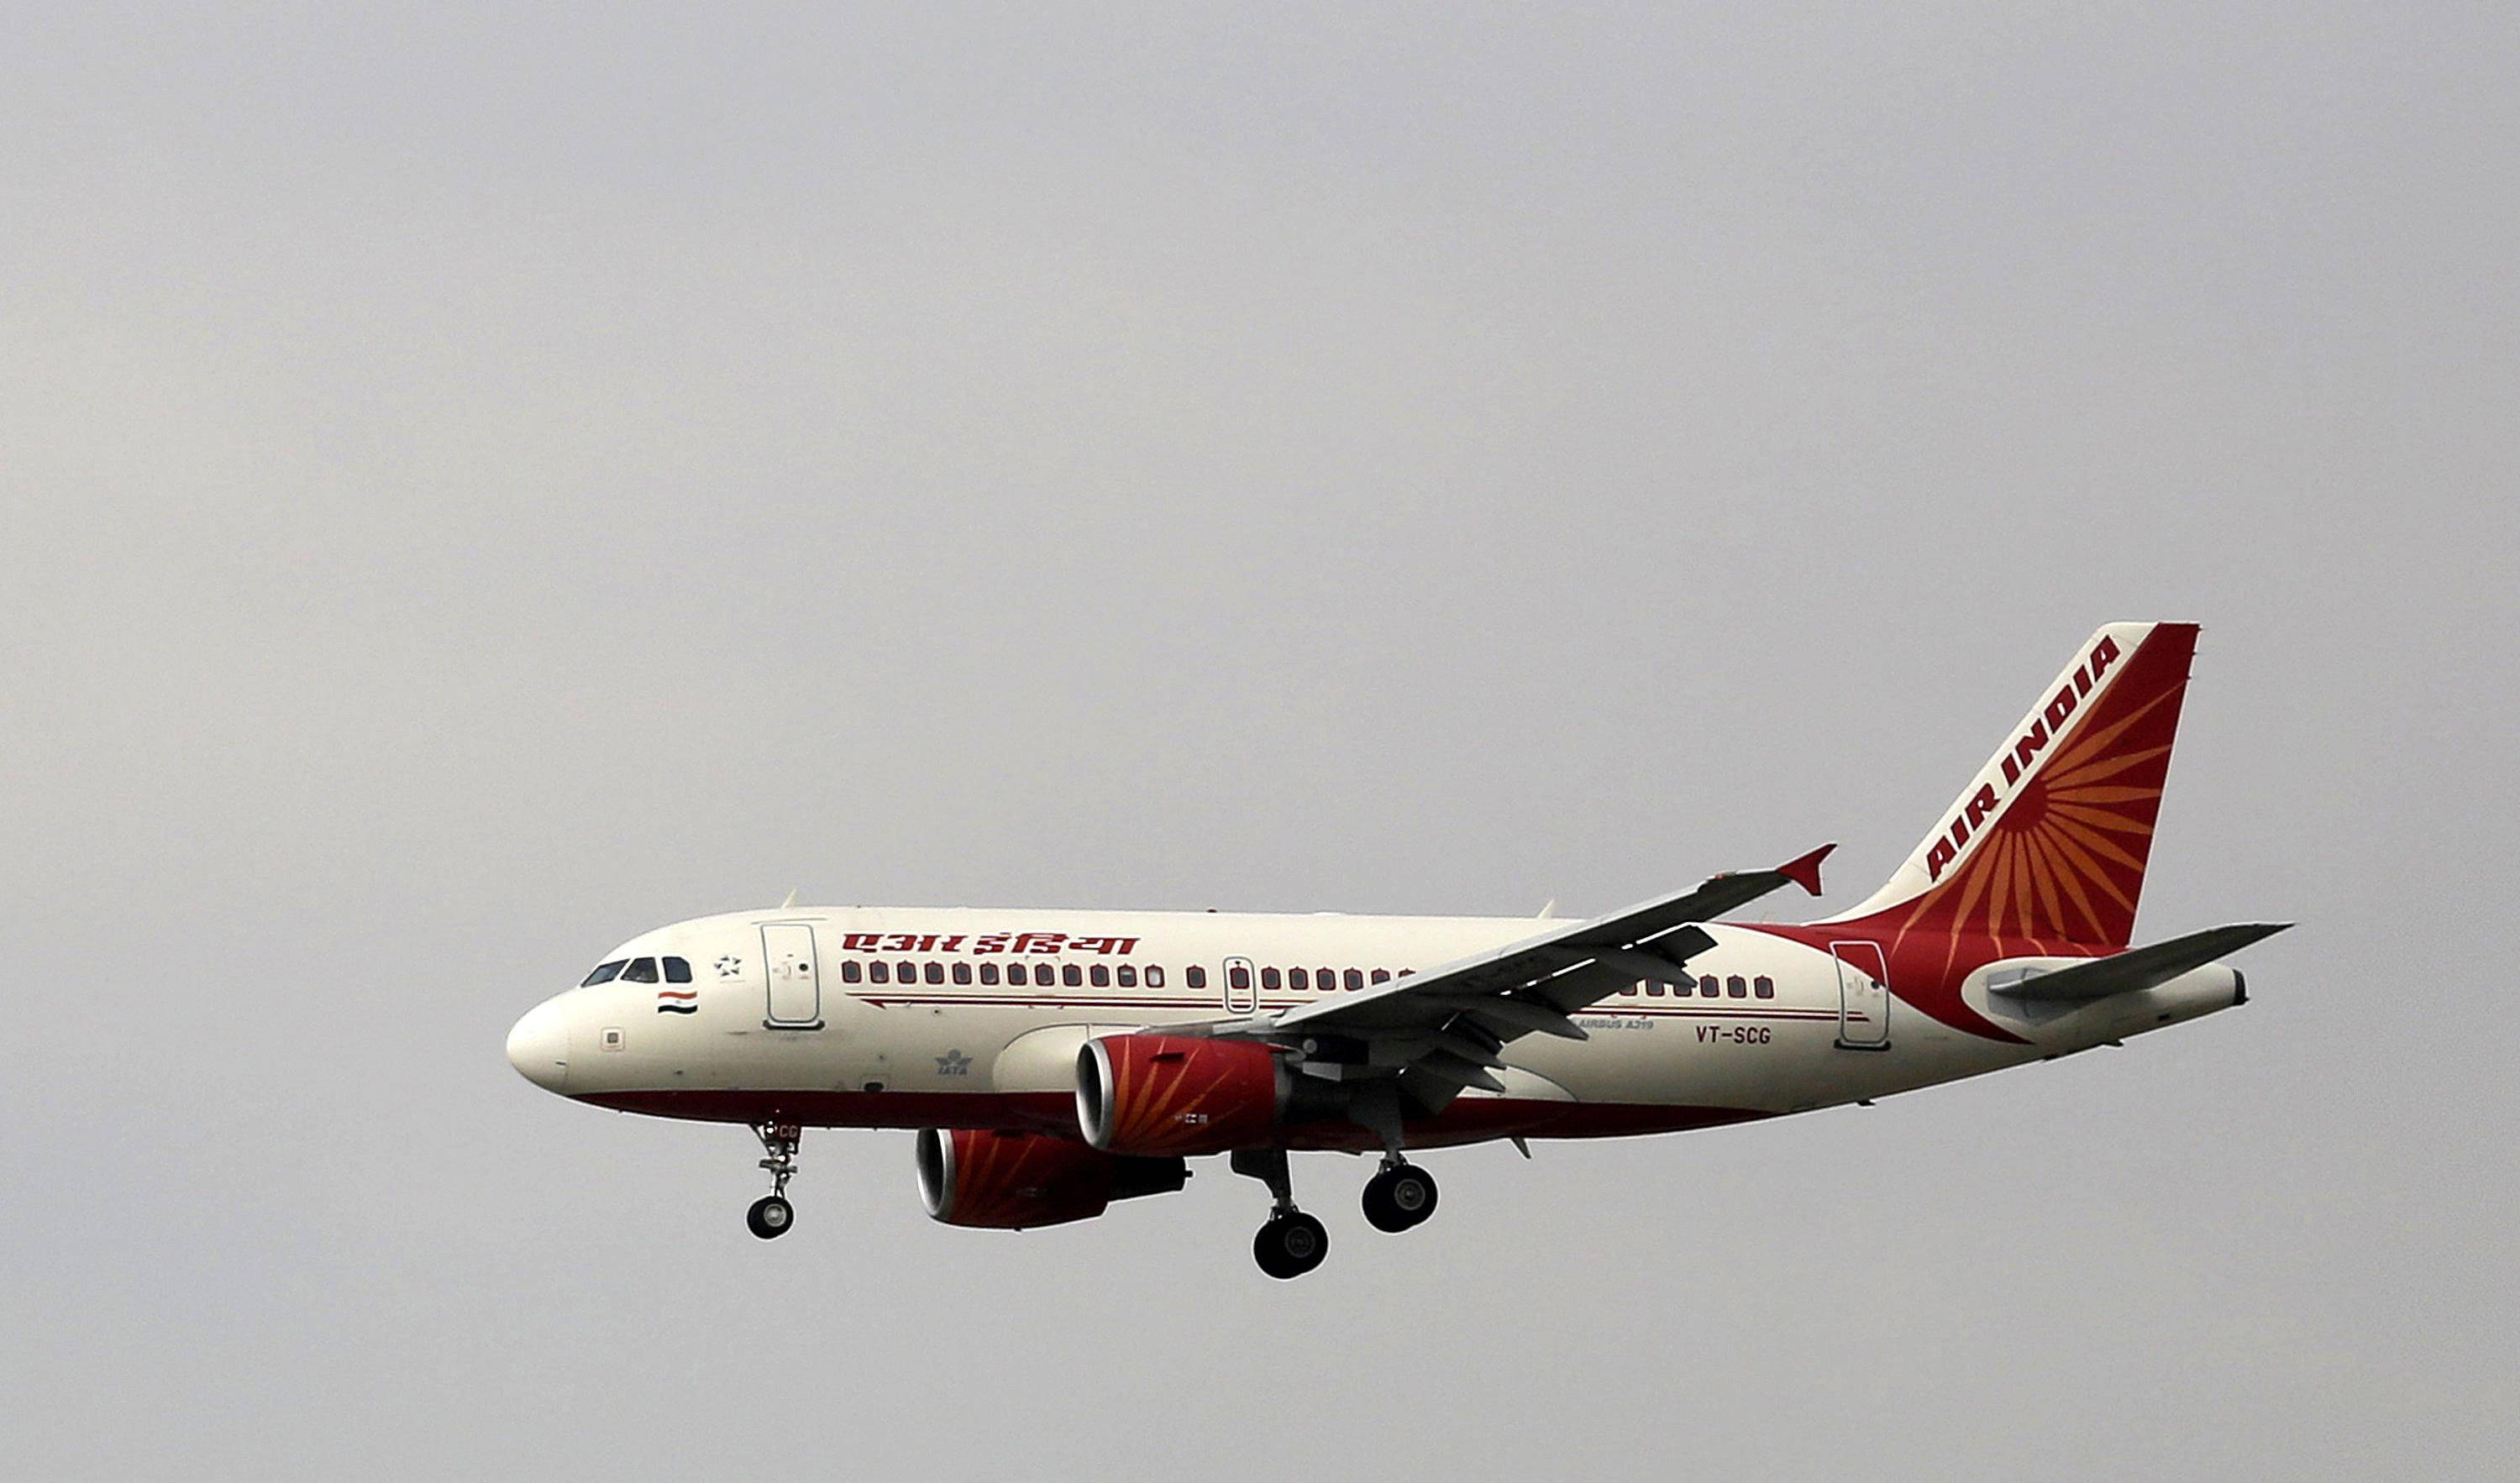 UAE investor is part of group bidding for Air India